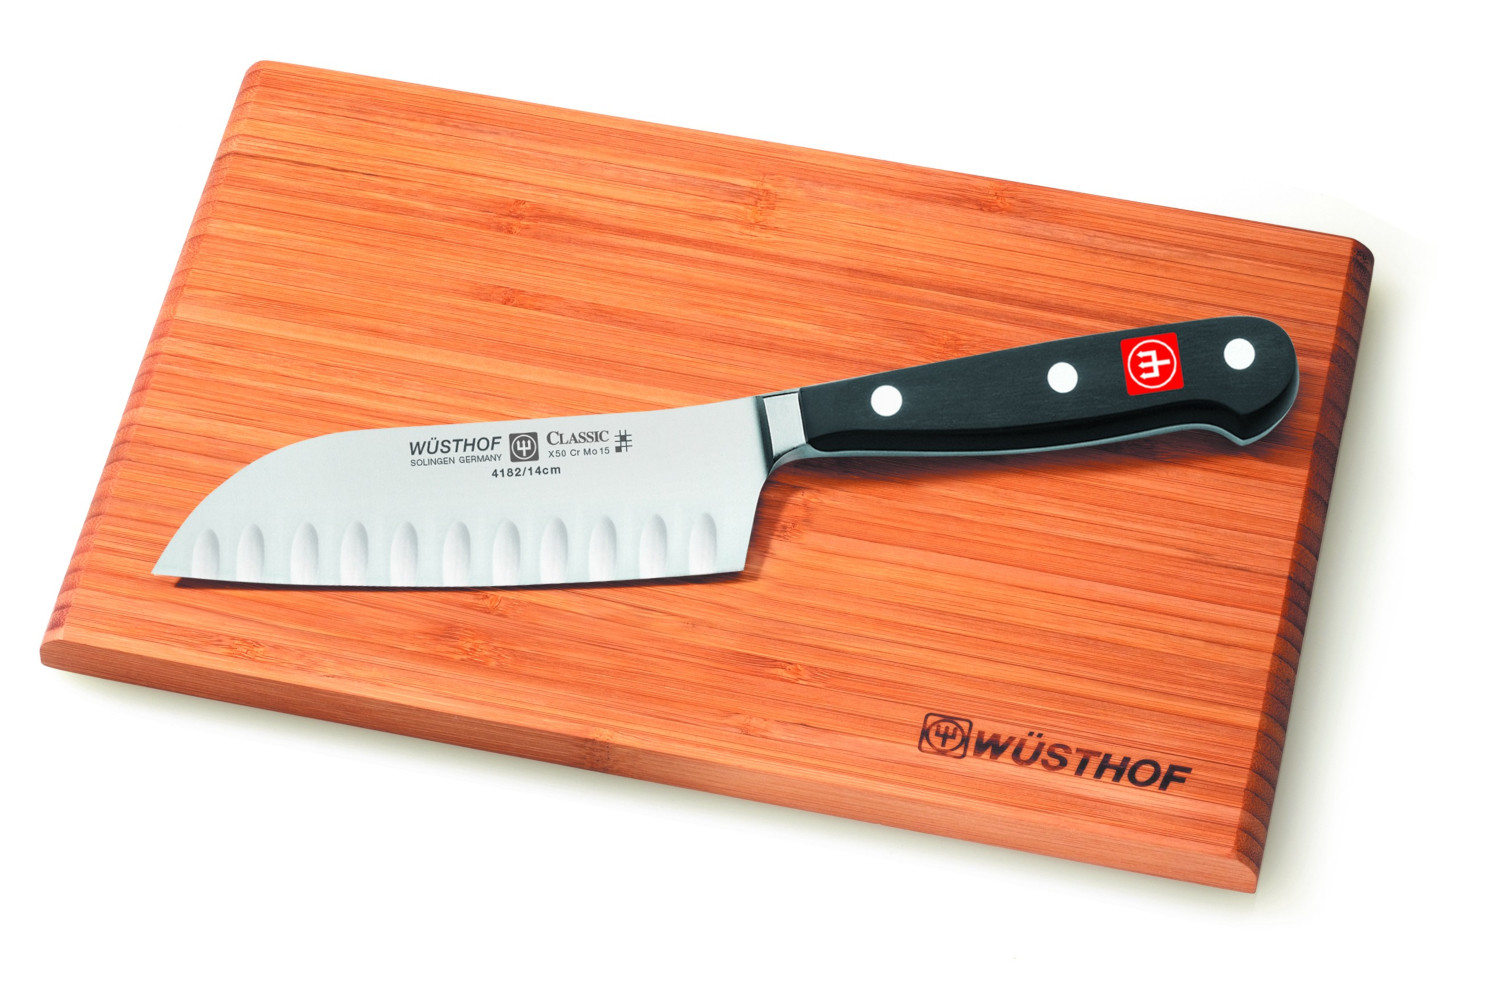 Wusthof Classic 5 inch Hollow Edge Santoku Knife & Cutting Board Set